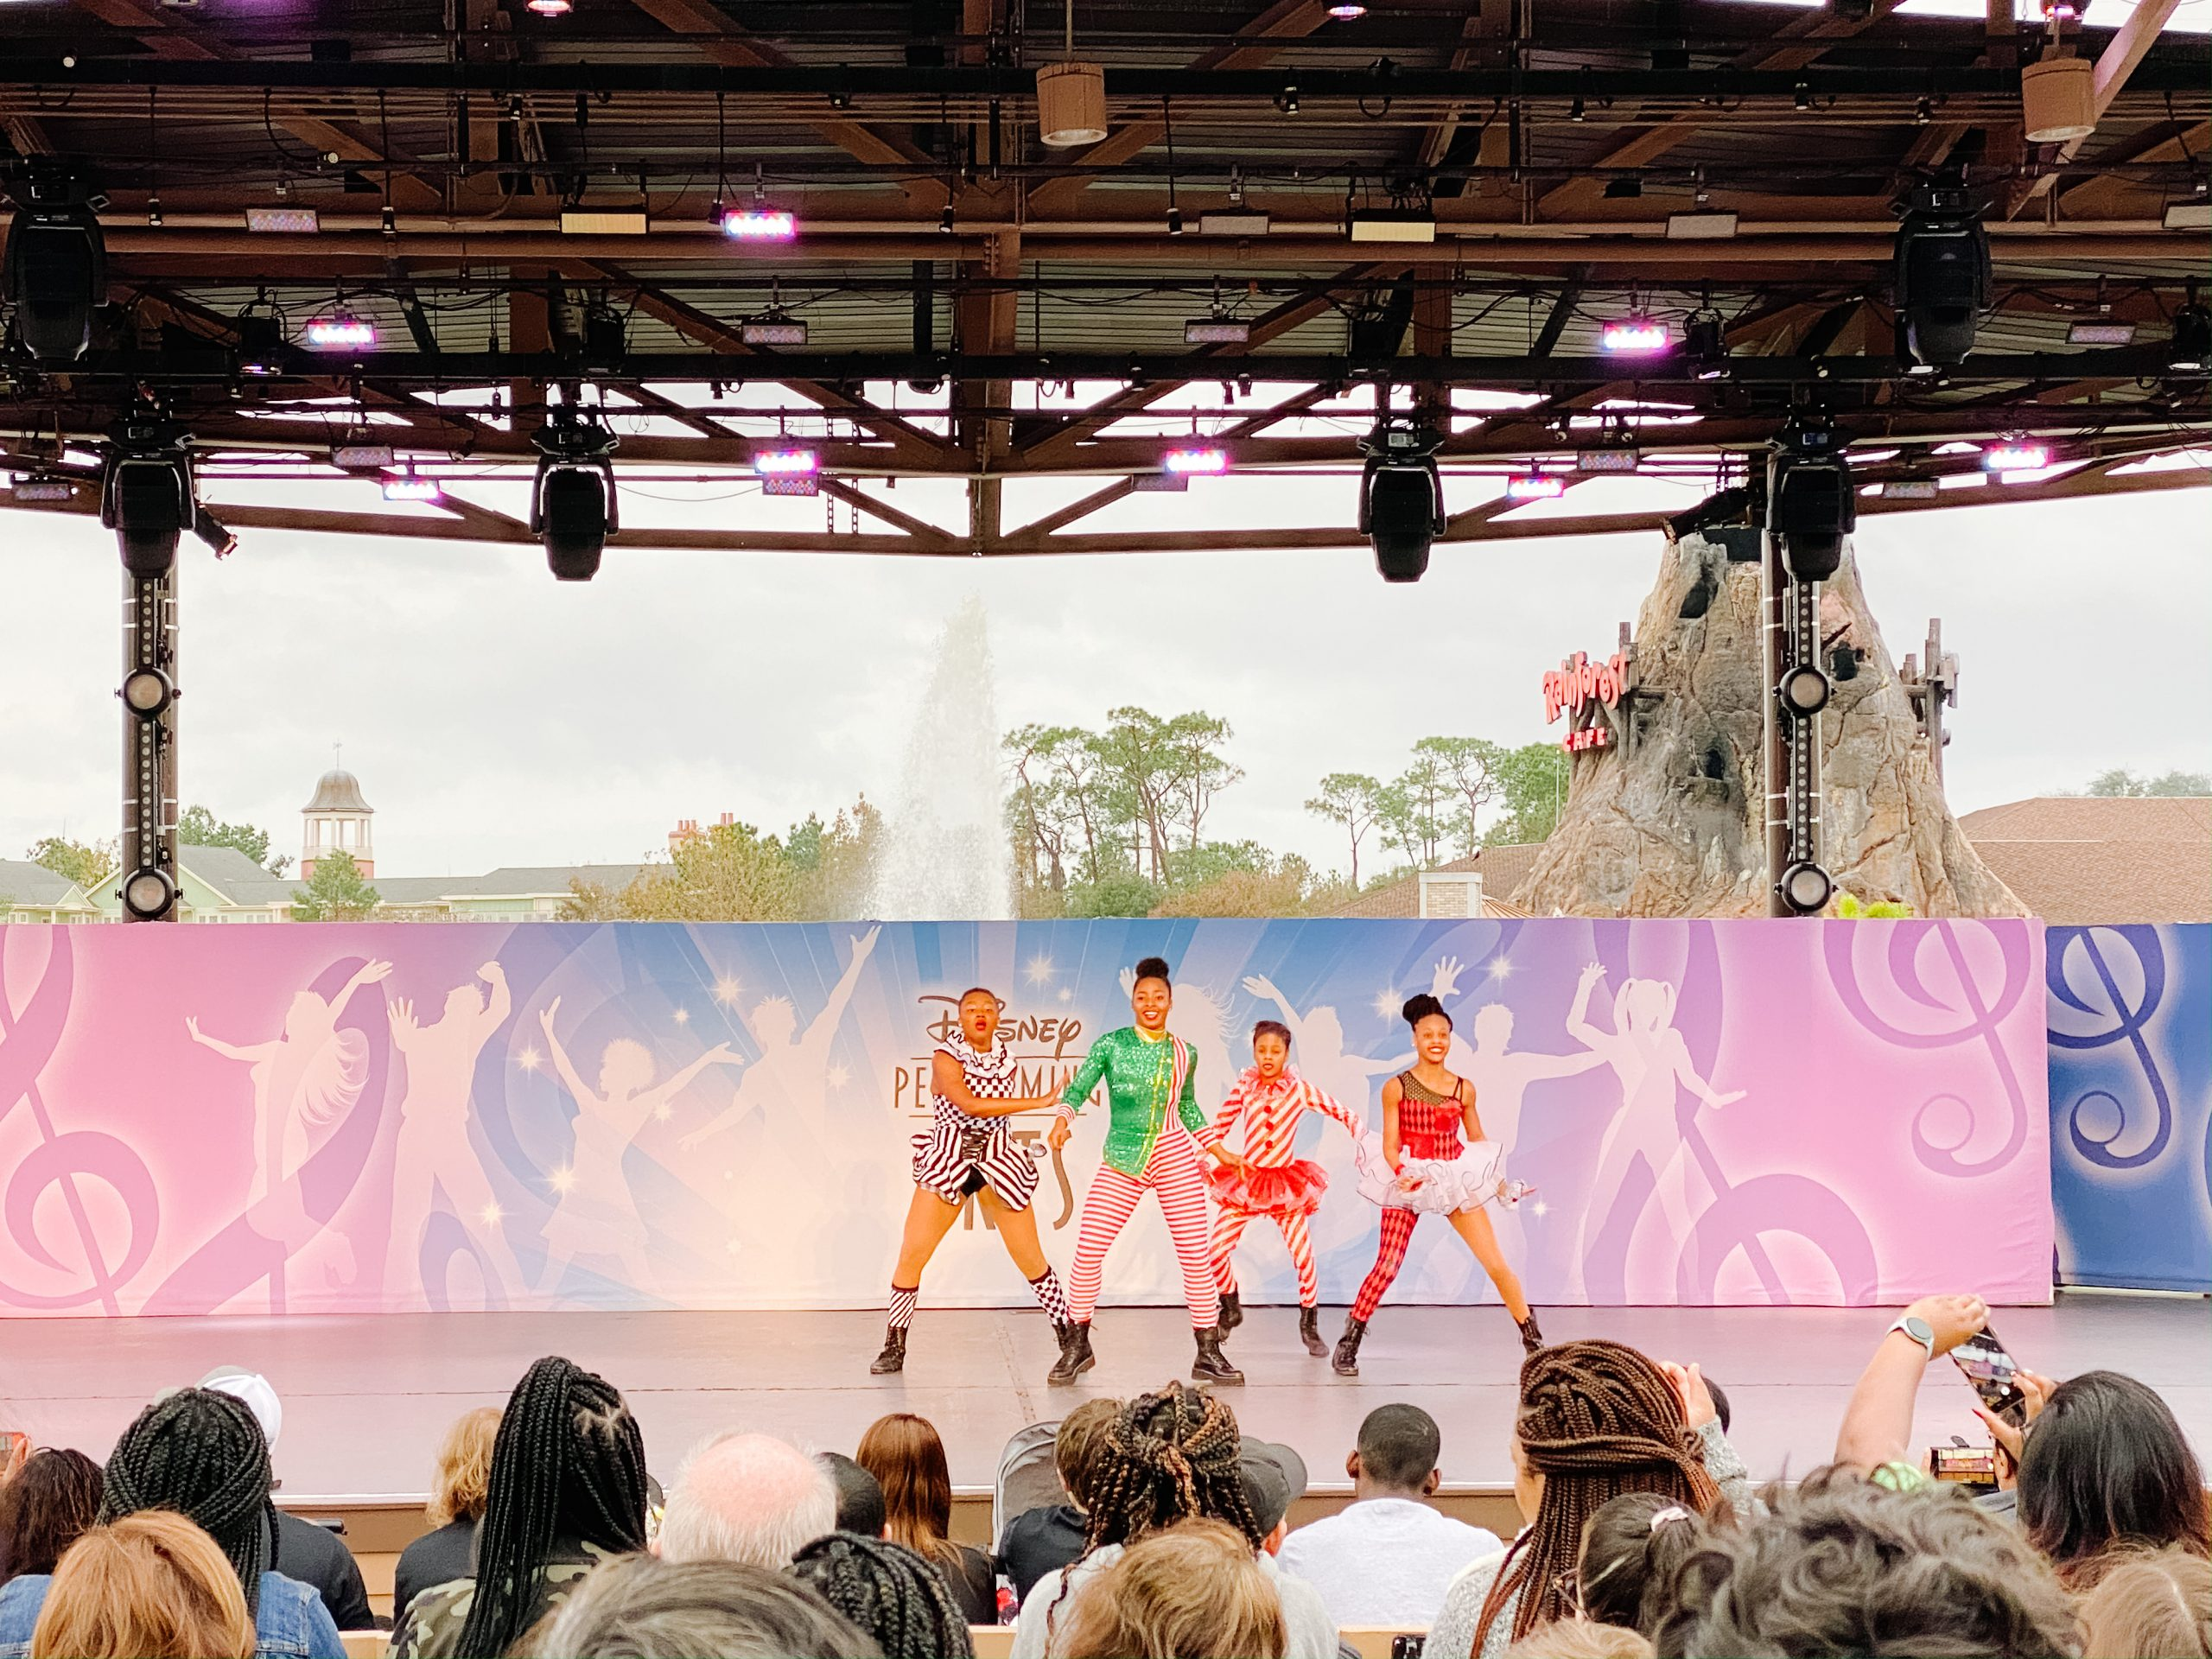 Holiday entertainment at Disney Springs